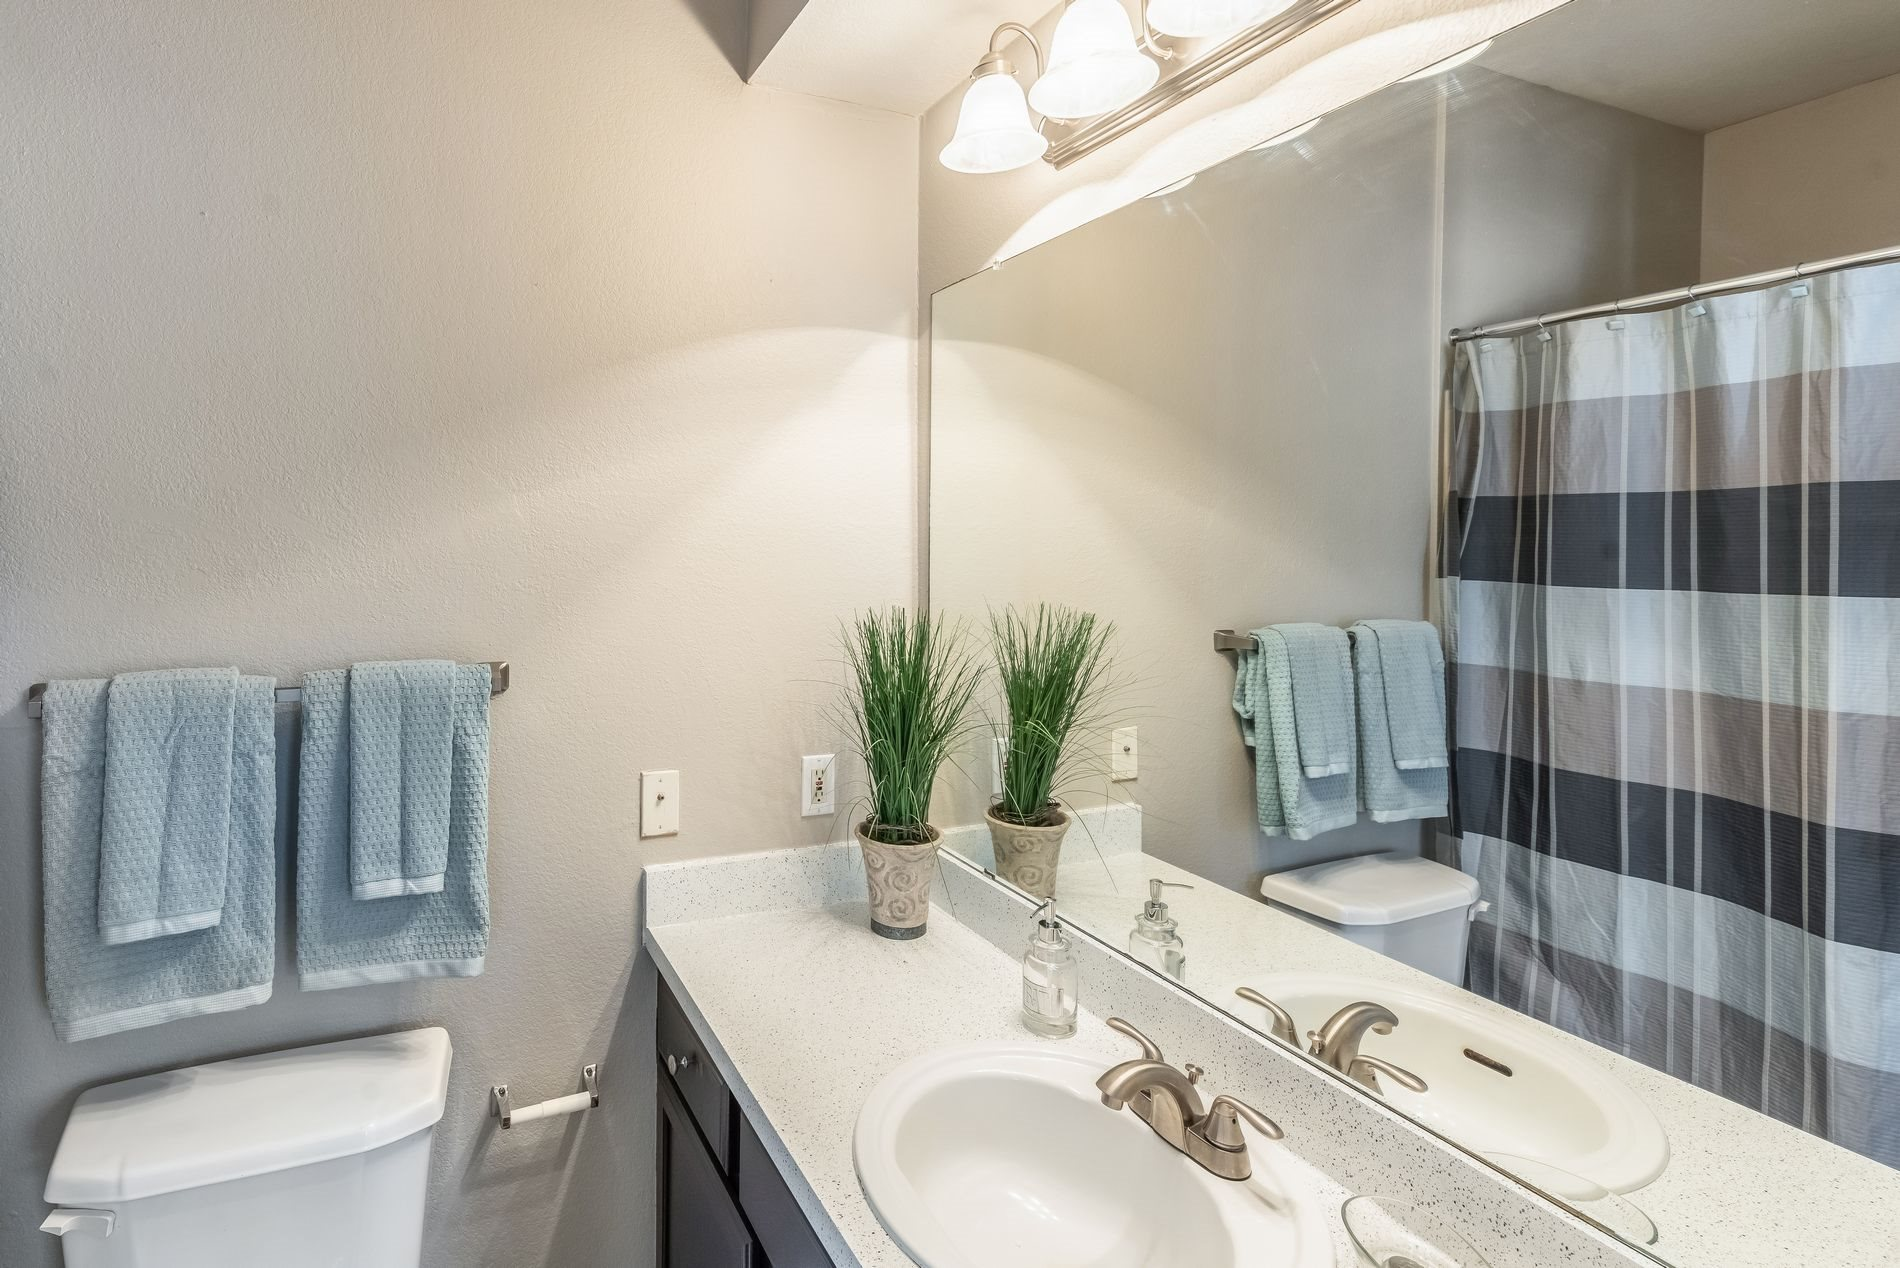 Bathroom with Vanity at Station 3700 Apartment Homes in Euless, Texas